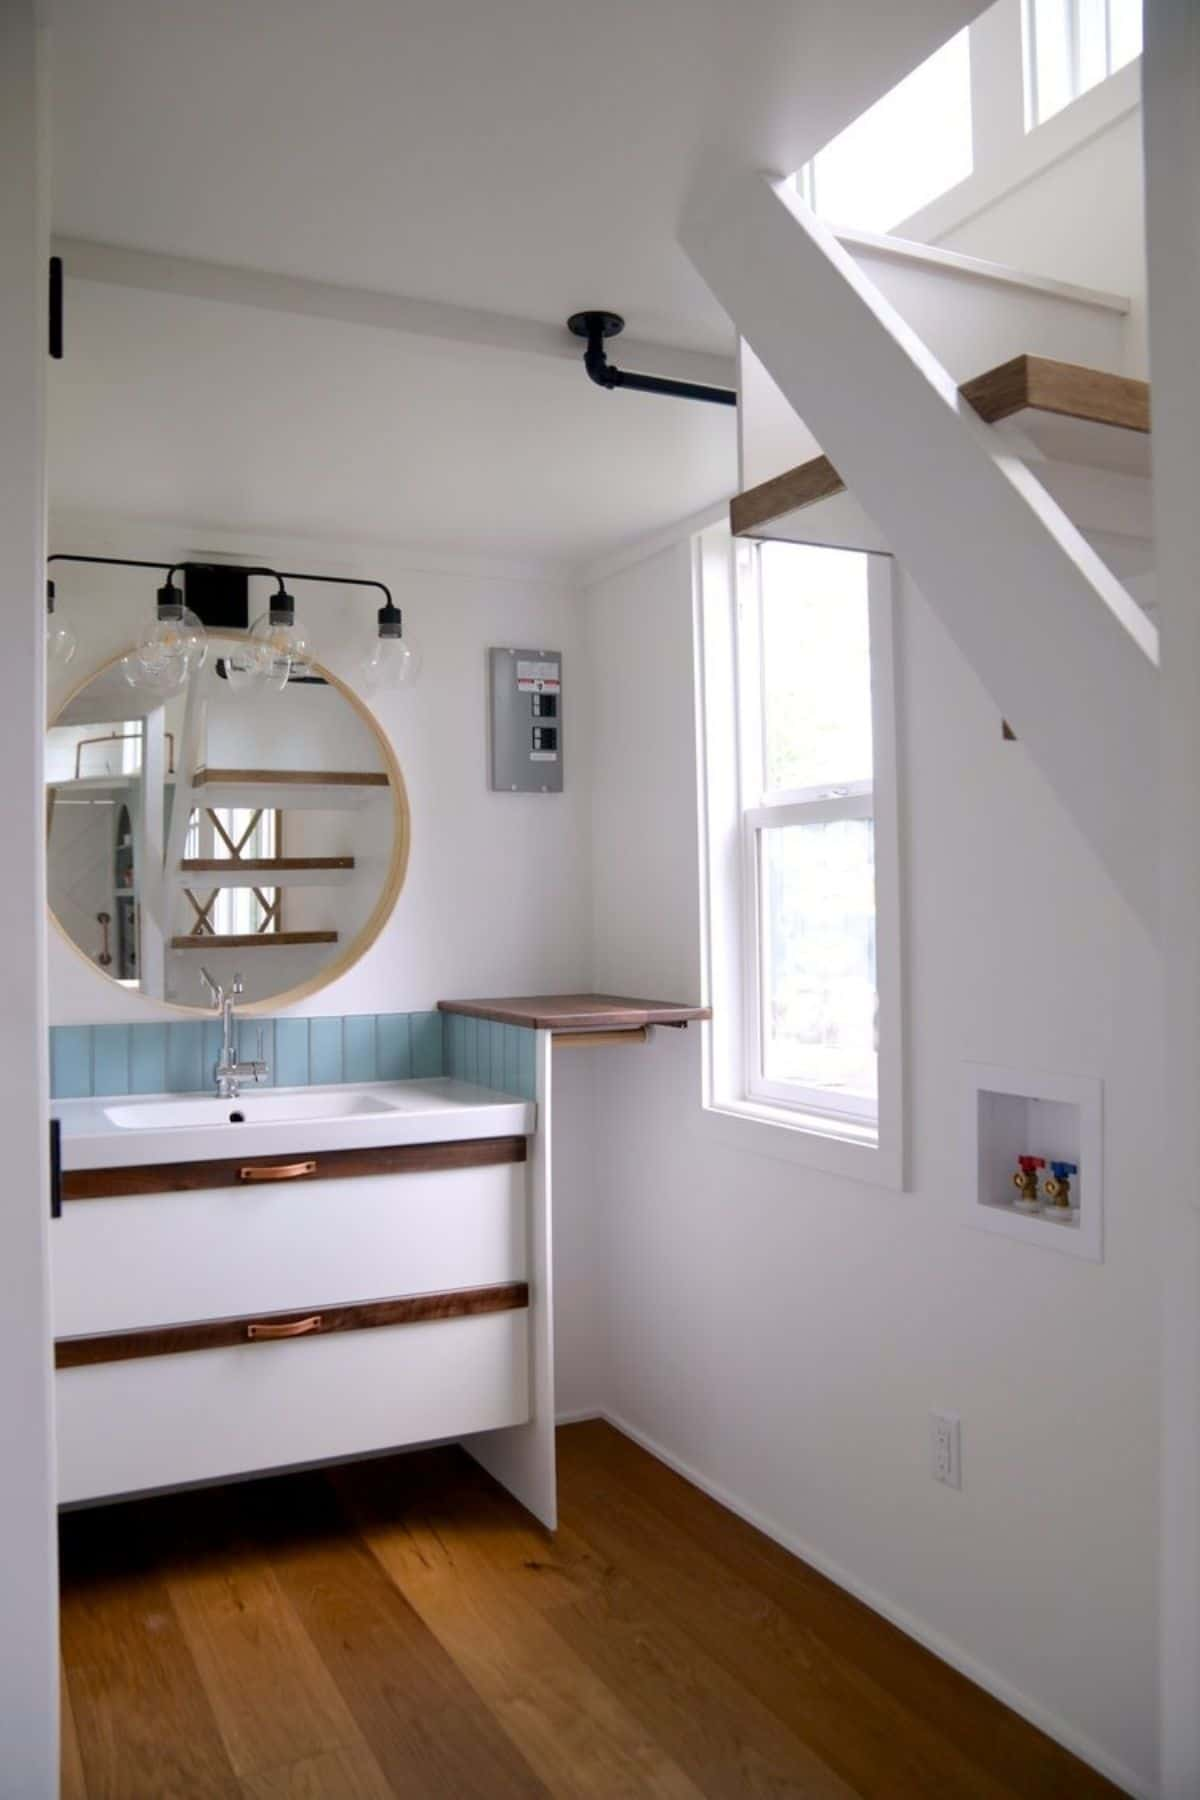 view into bathroom behind stairs with vanity against wall